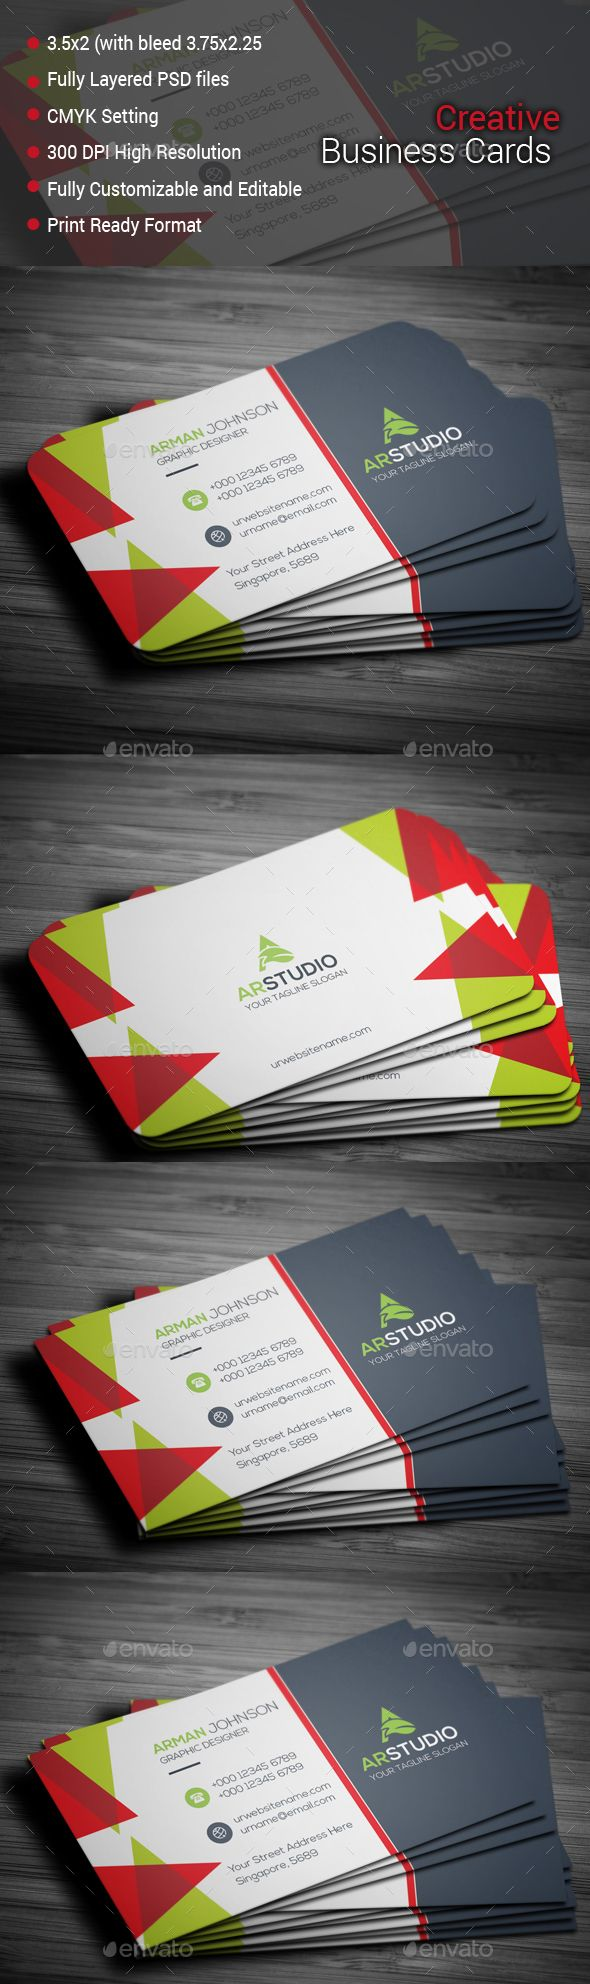 3023 best nice business cards on pinterest images on pinterest 3023 best nice business cards on pinterest images on pinterest visual identity cards and fashion designers magicingreecefo Choice Image